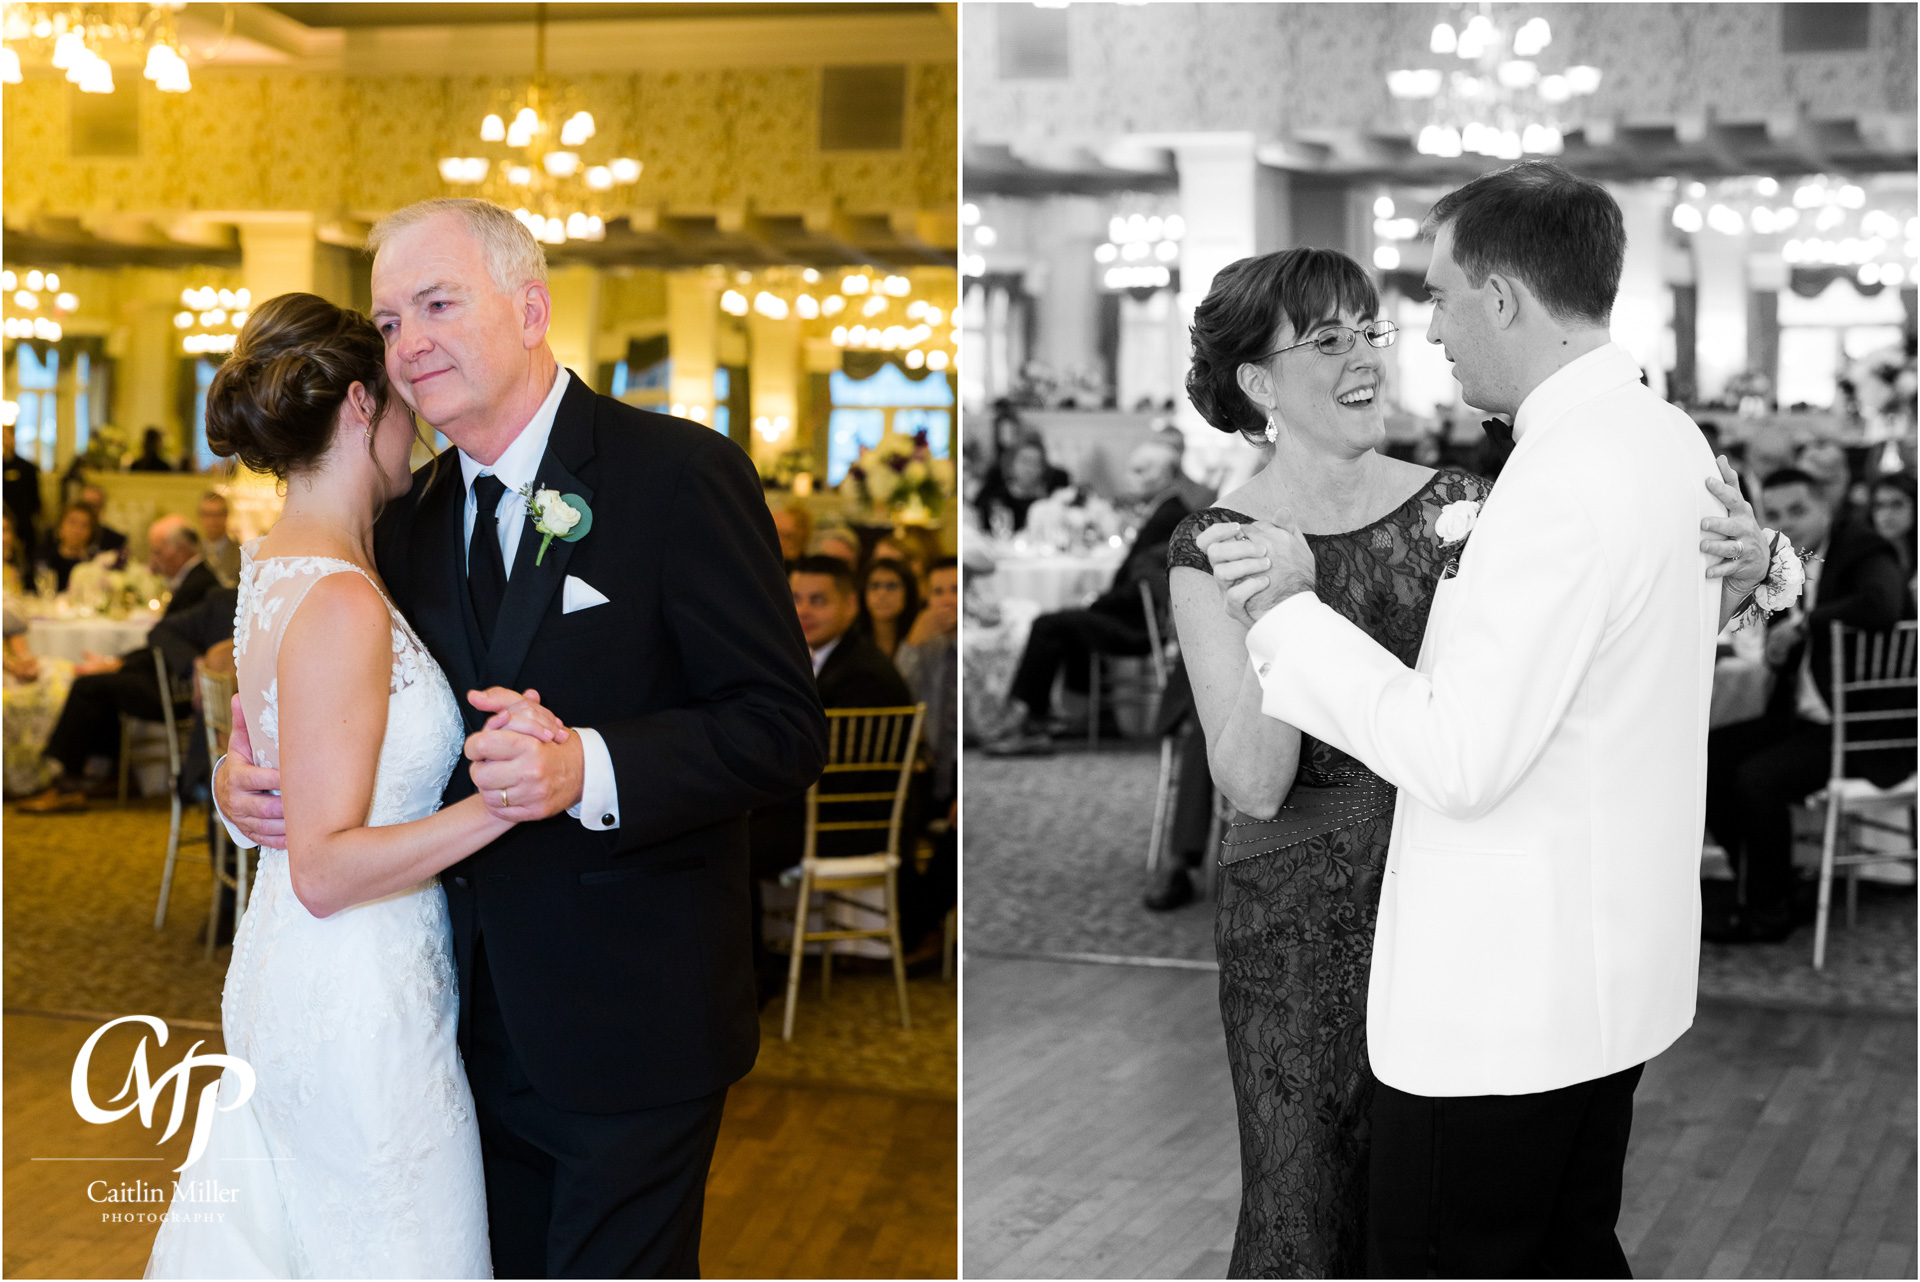 sale-18.jpg from Kendall and Chris's Lake George wedding at the Inn at Erlowest by Saratoga Wedding Photographer Caitlin Miller Photography. Lake George Wedding Photographer. Adirondack wedding photographer. Albany wedding photographer. Lake Placid Wedding Photographer. Saratoga Wedding Photographer